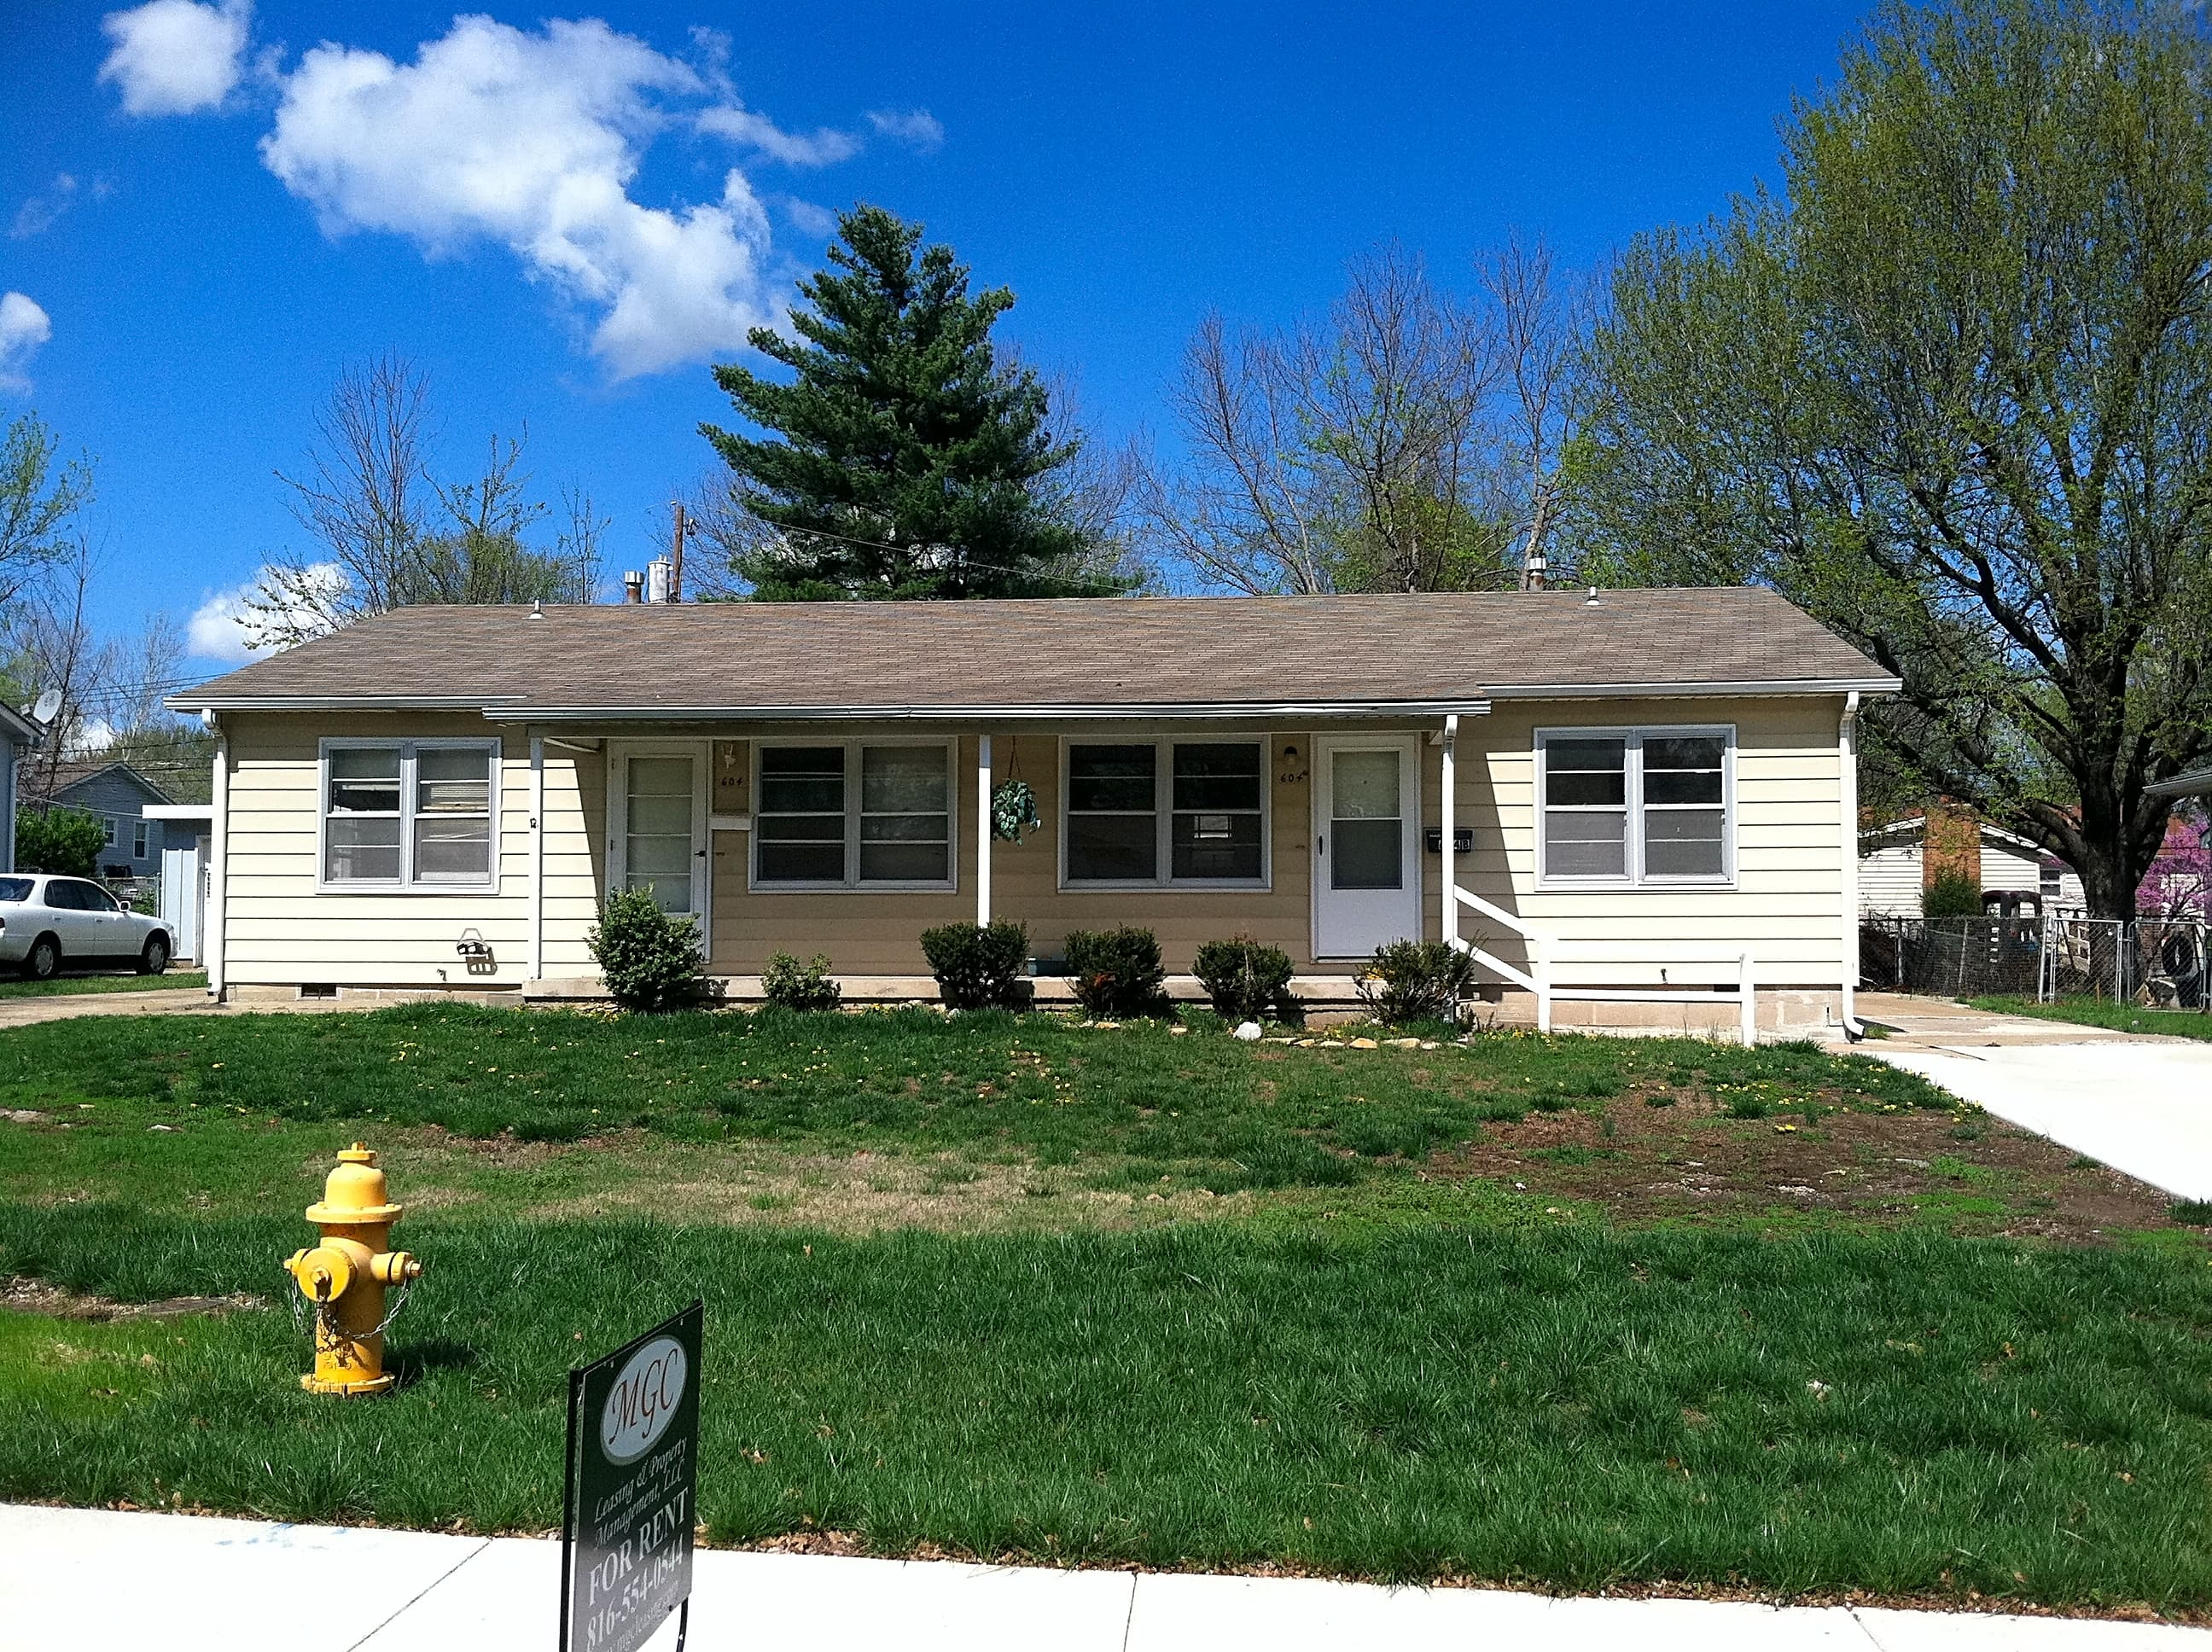 Duplex for Rent in Lees Summit